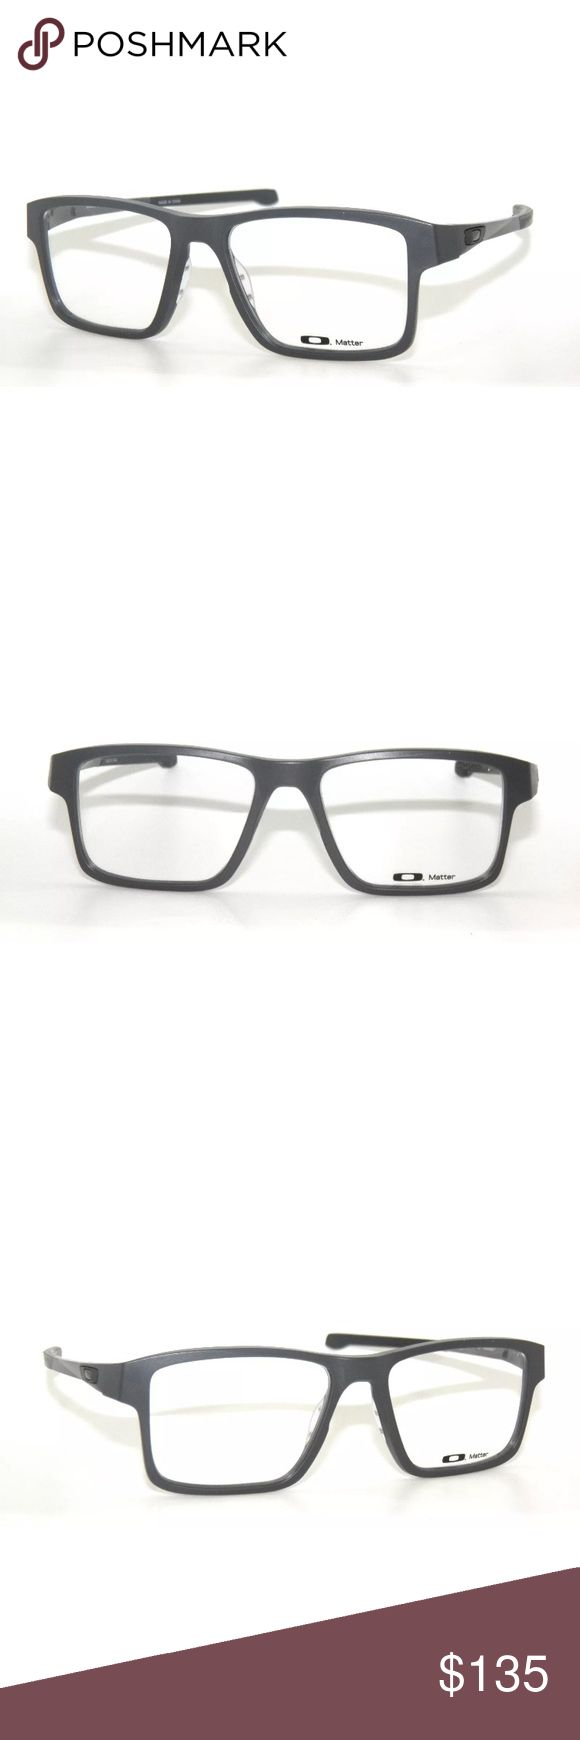 Oakley Chamfer 2.0 Pavement Glasses Frame 54mm Brand new, comes with original packaging. Oakley Accessories Glasses